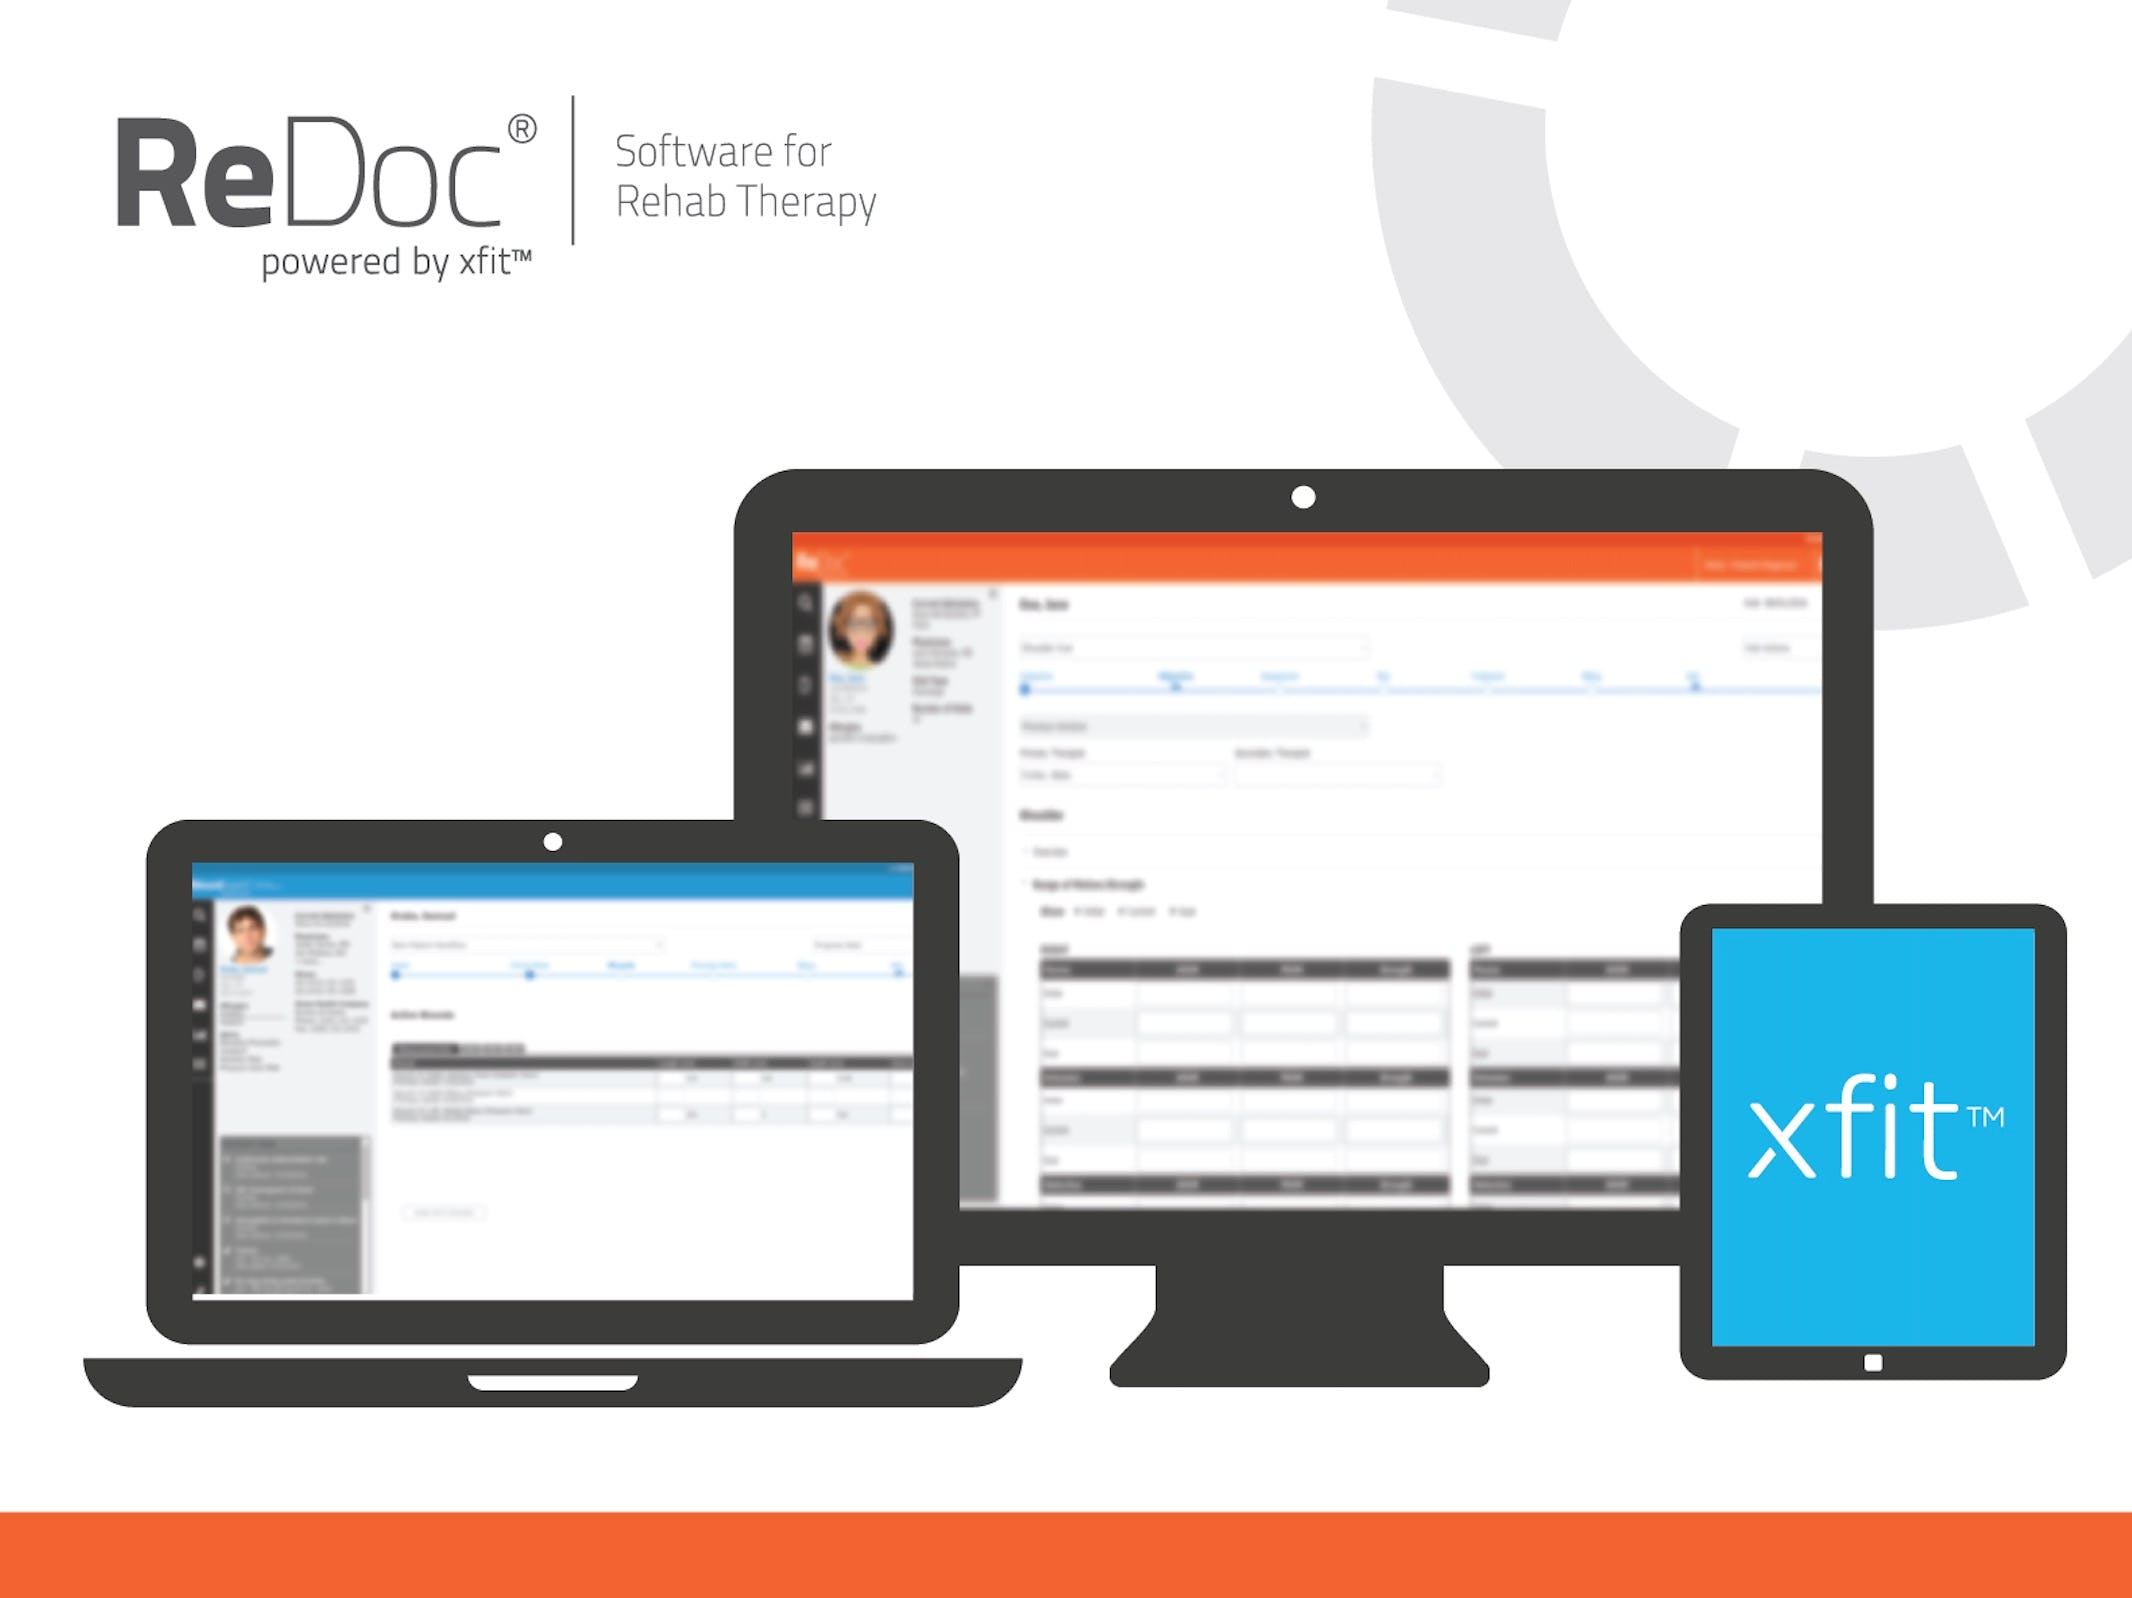 Net Health Therapy for Hospital Outpatient Software - ReDoc dashboards